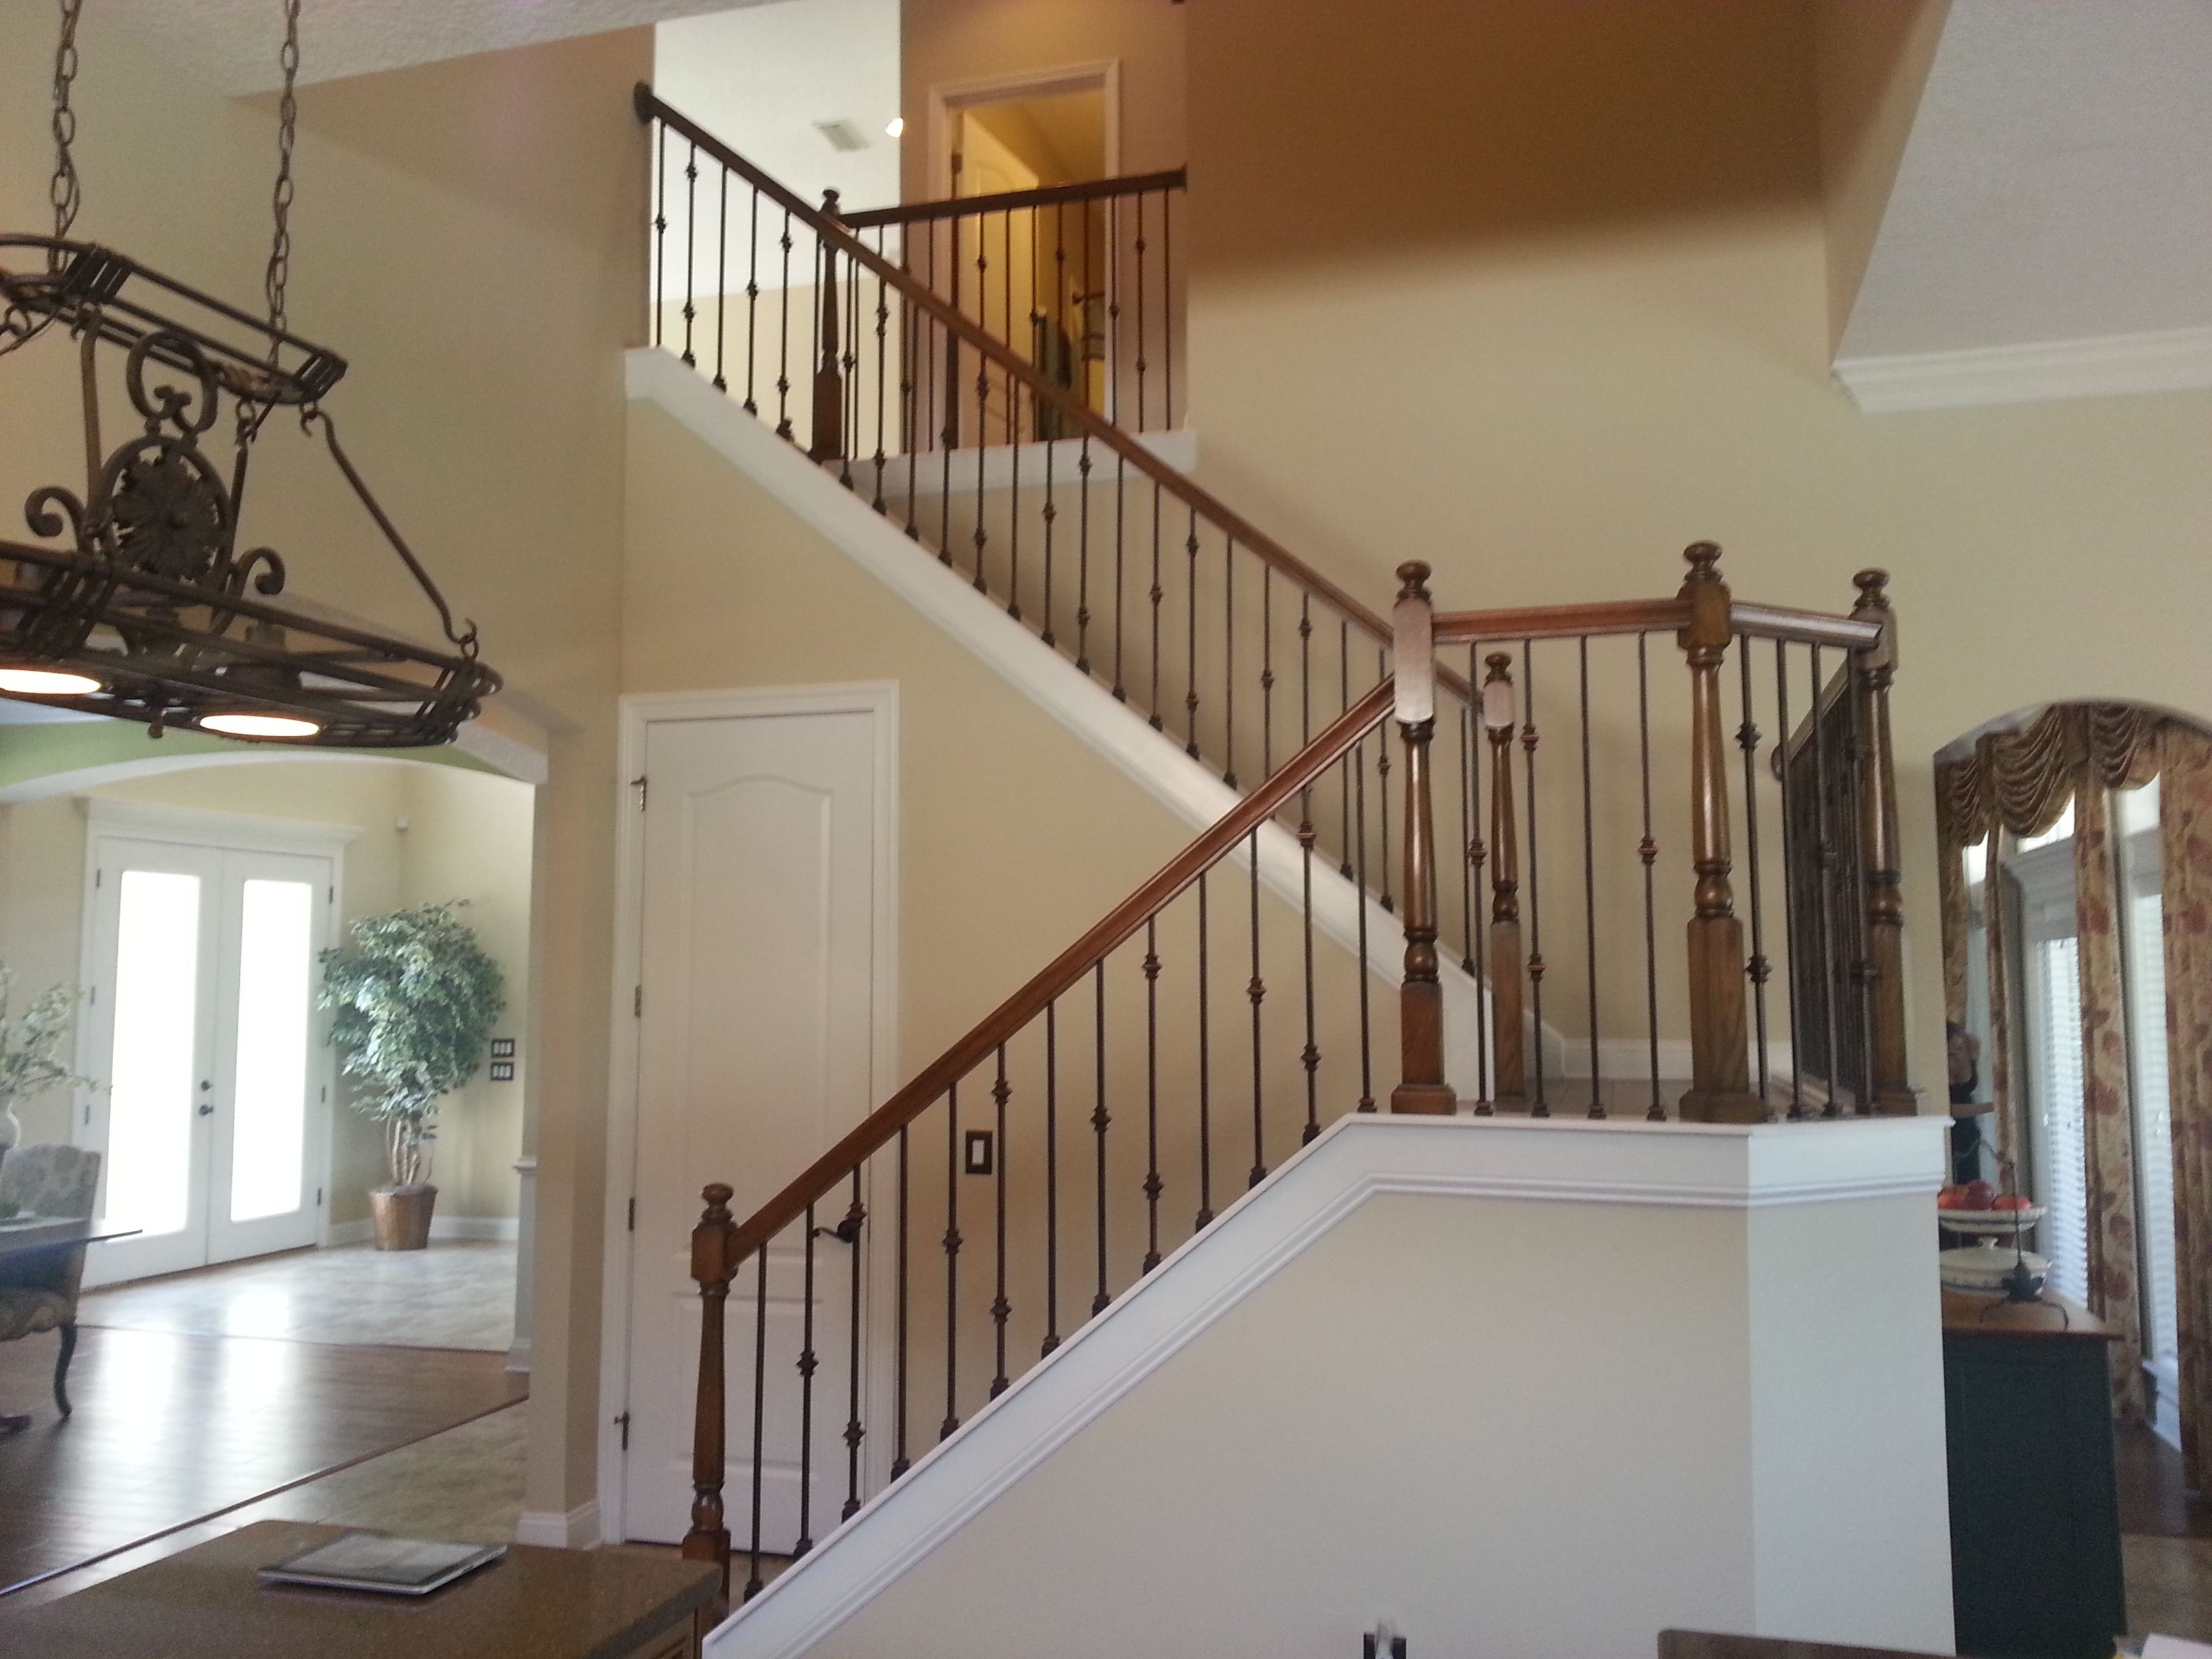 Wrought iron stair railing styles for trendy staircase ideas stunning wrought iron stair - Home stair railing design ...